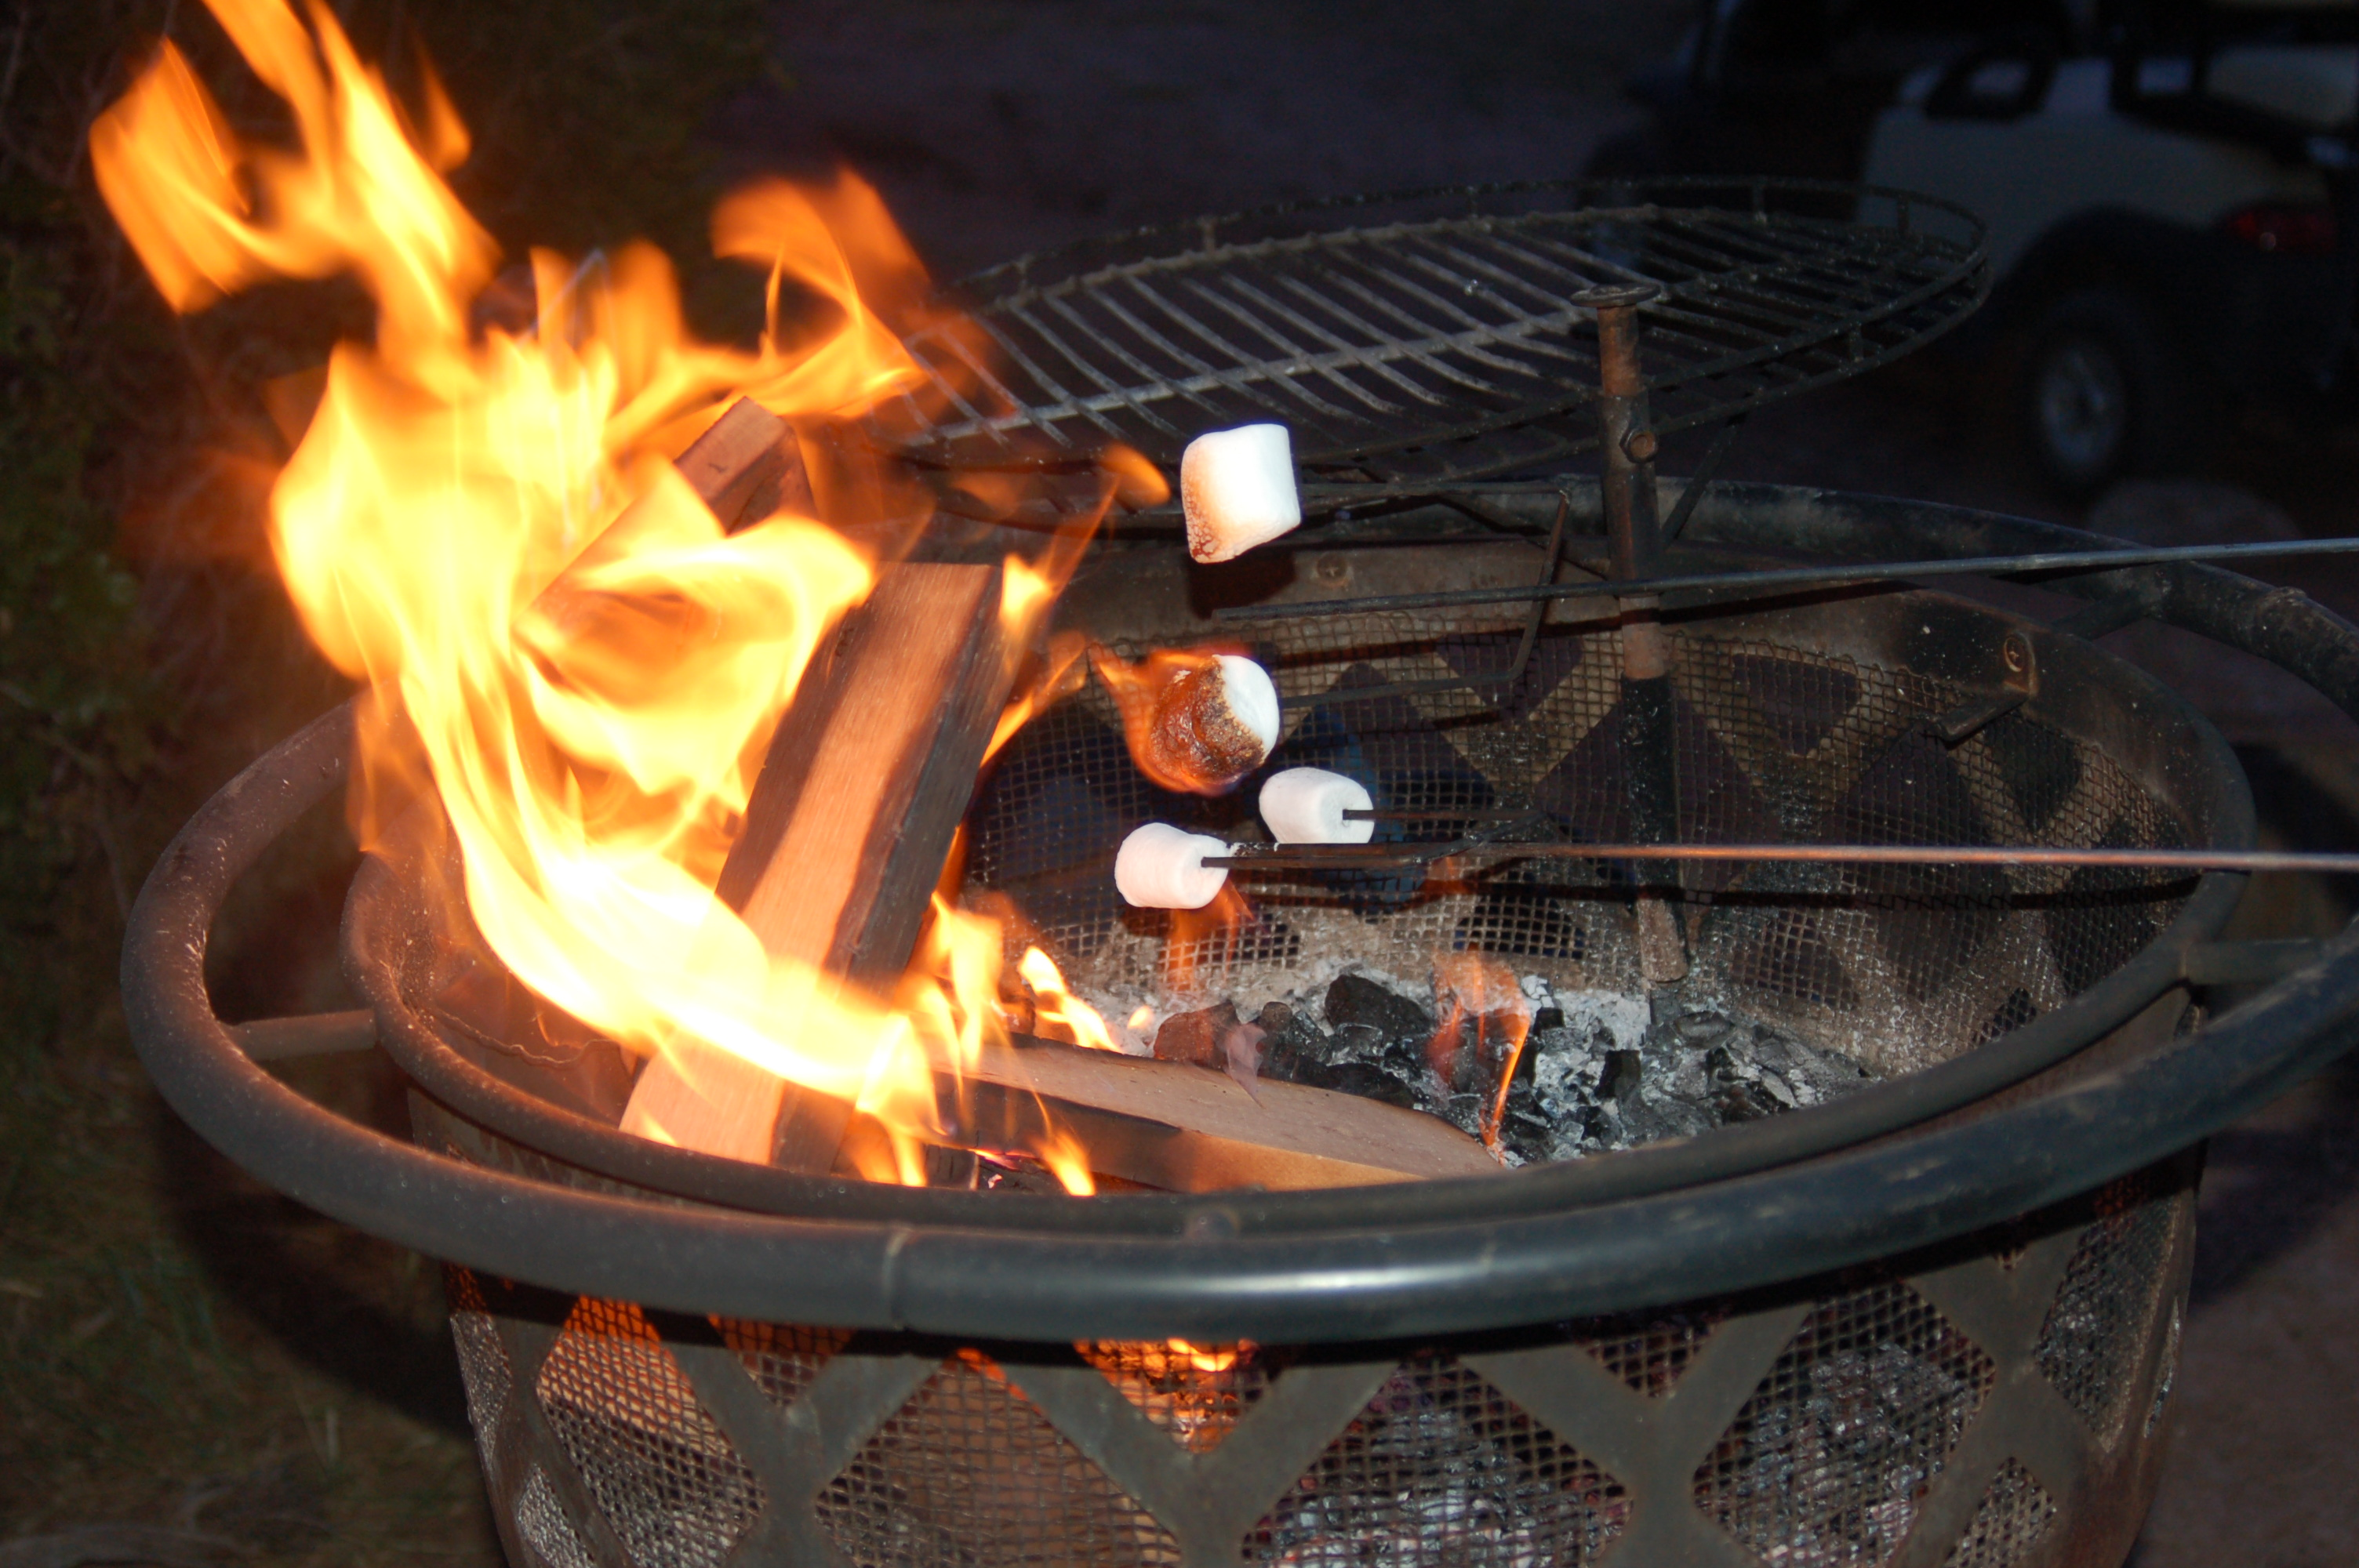 Roasting Marshmallows Over A Contained Fire Pit At Zion Ponderosa Ranch Resort Utah July